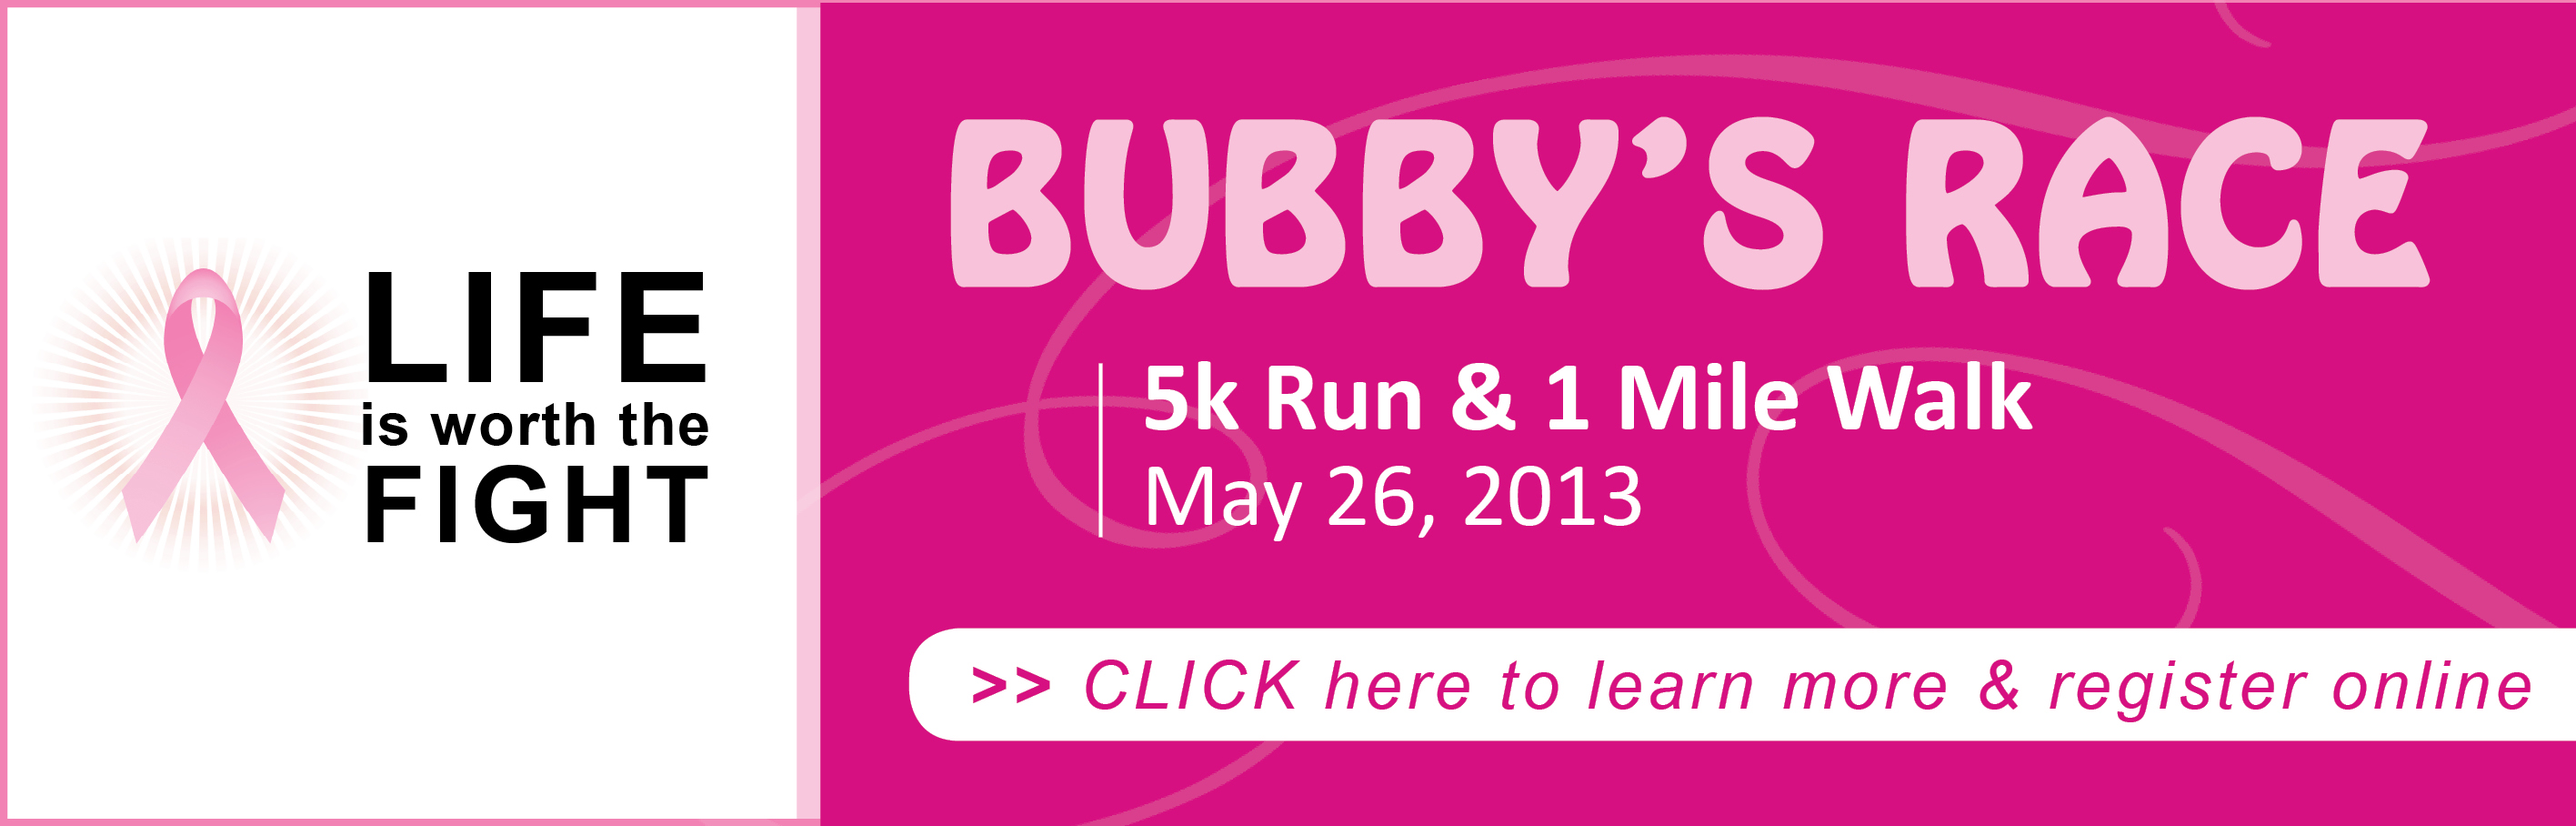 Bubby's Race - click to learn more or register online